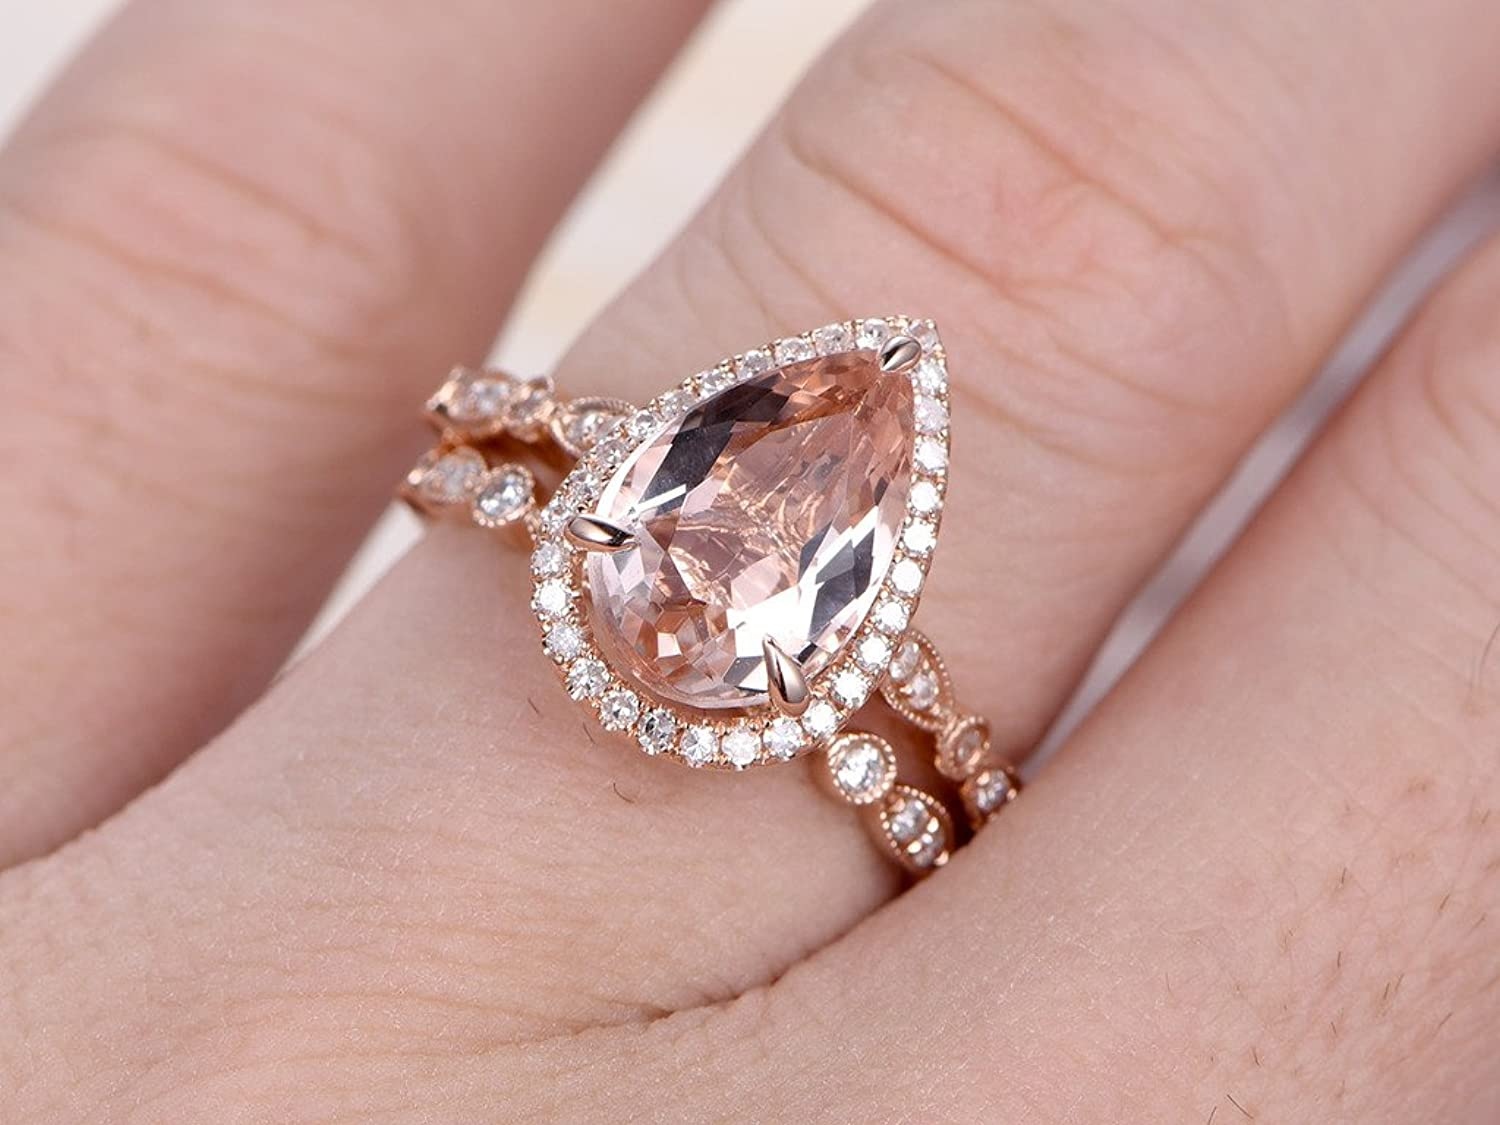 2pcs Wedding Ring Set, 8x12mm Pear Cut Pink Morganite 14k Rose Gold ...